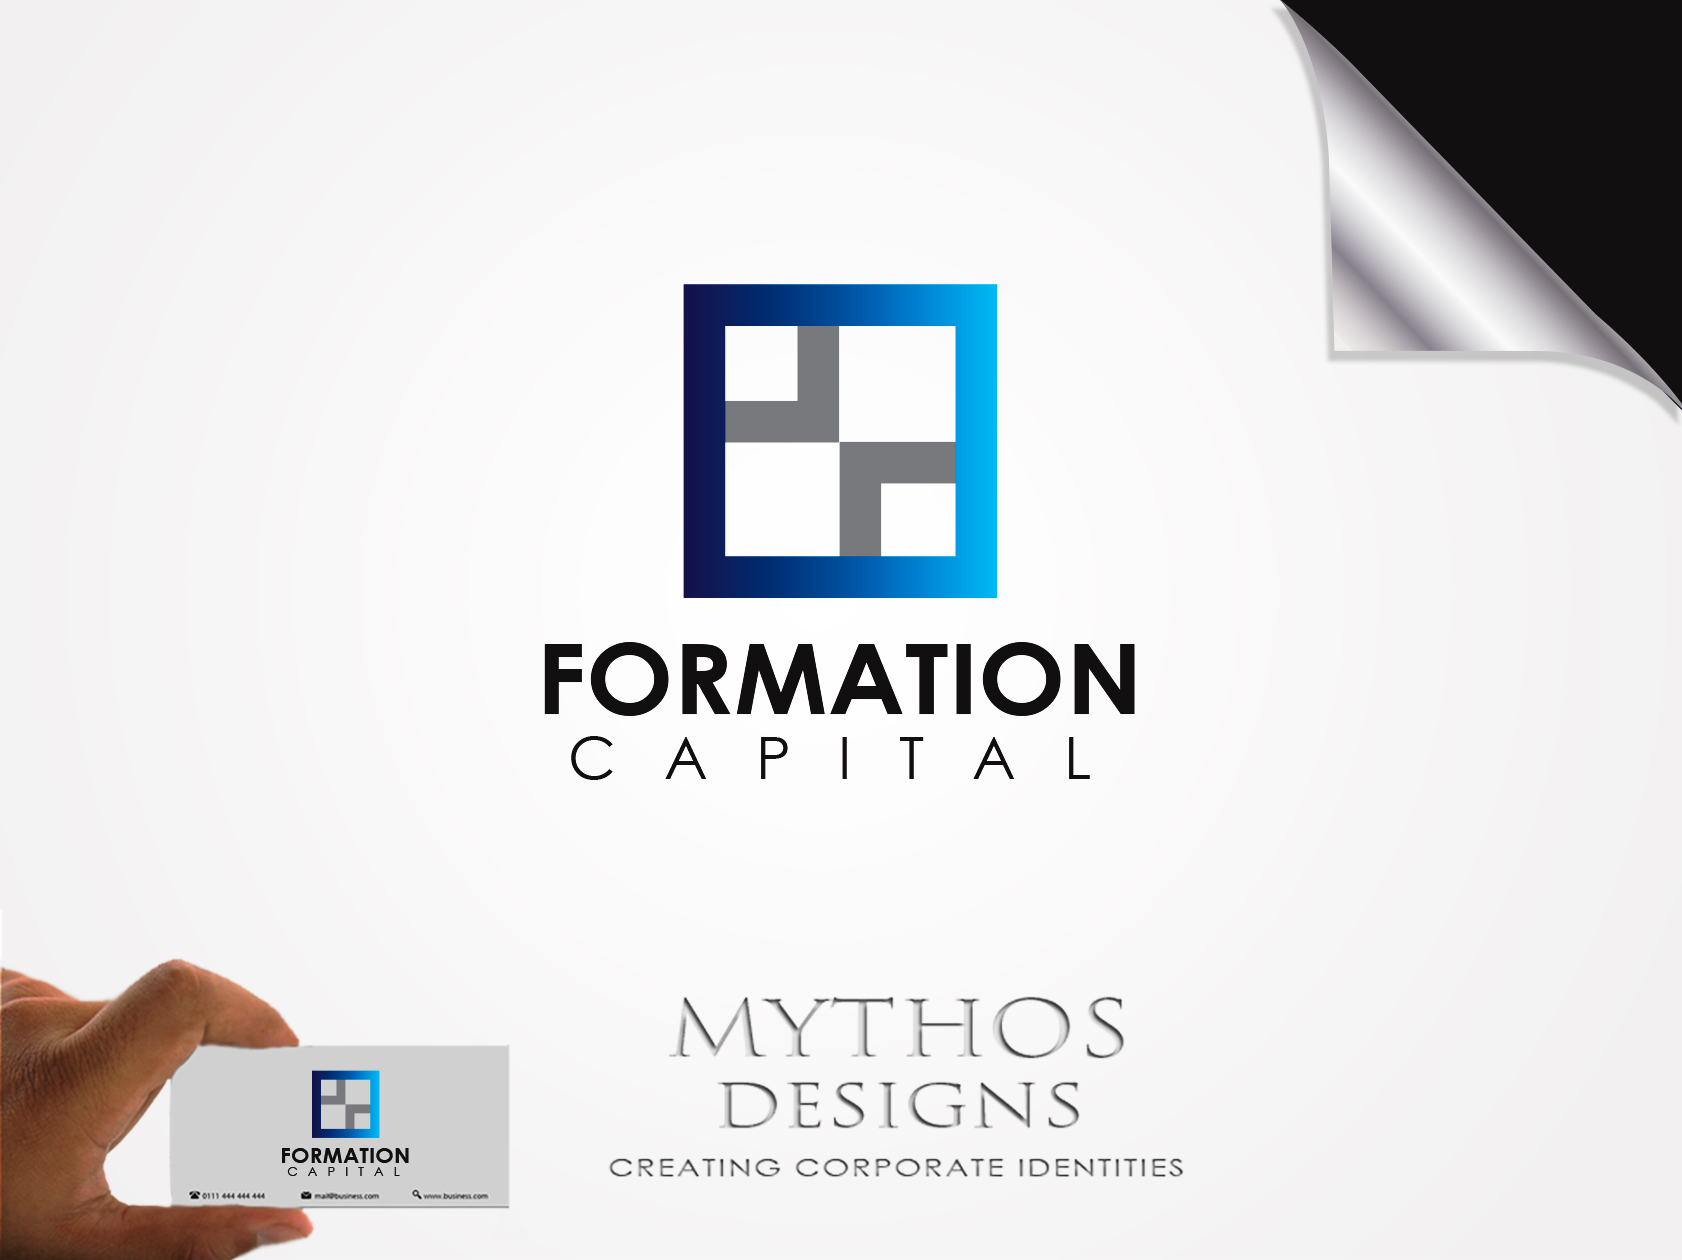 Logo Design by Mythos Designs - Entry No. 20 in the Logo Design Contest Inspiring Logo Design for Formation Capital.